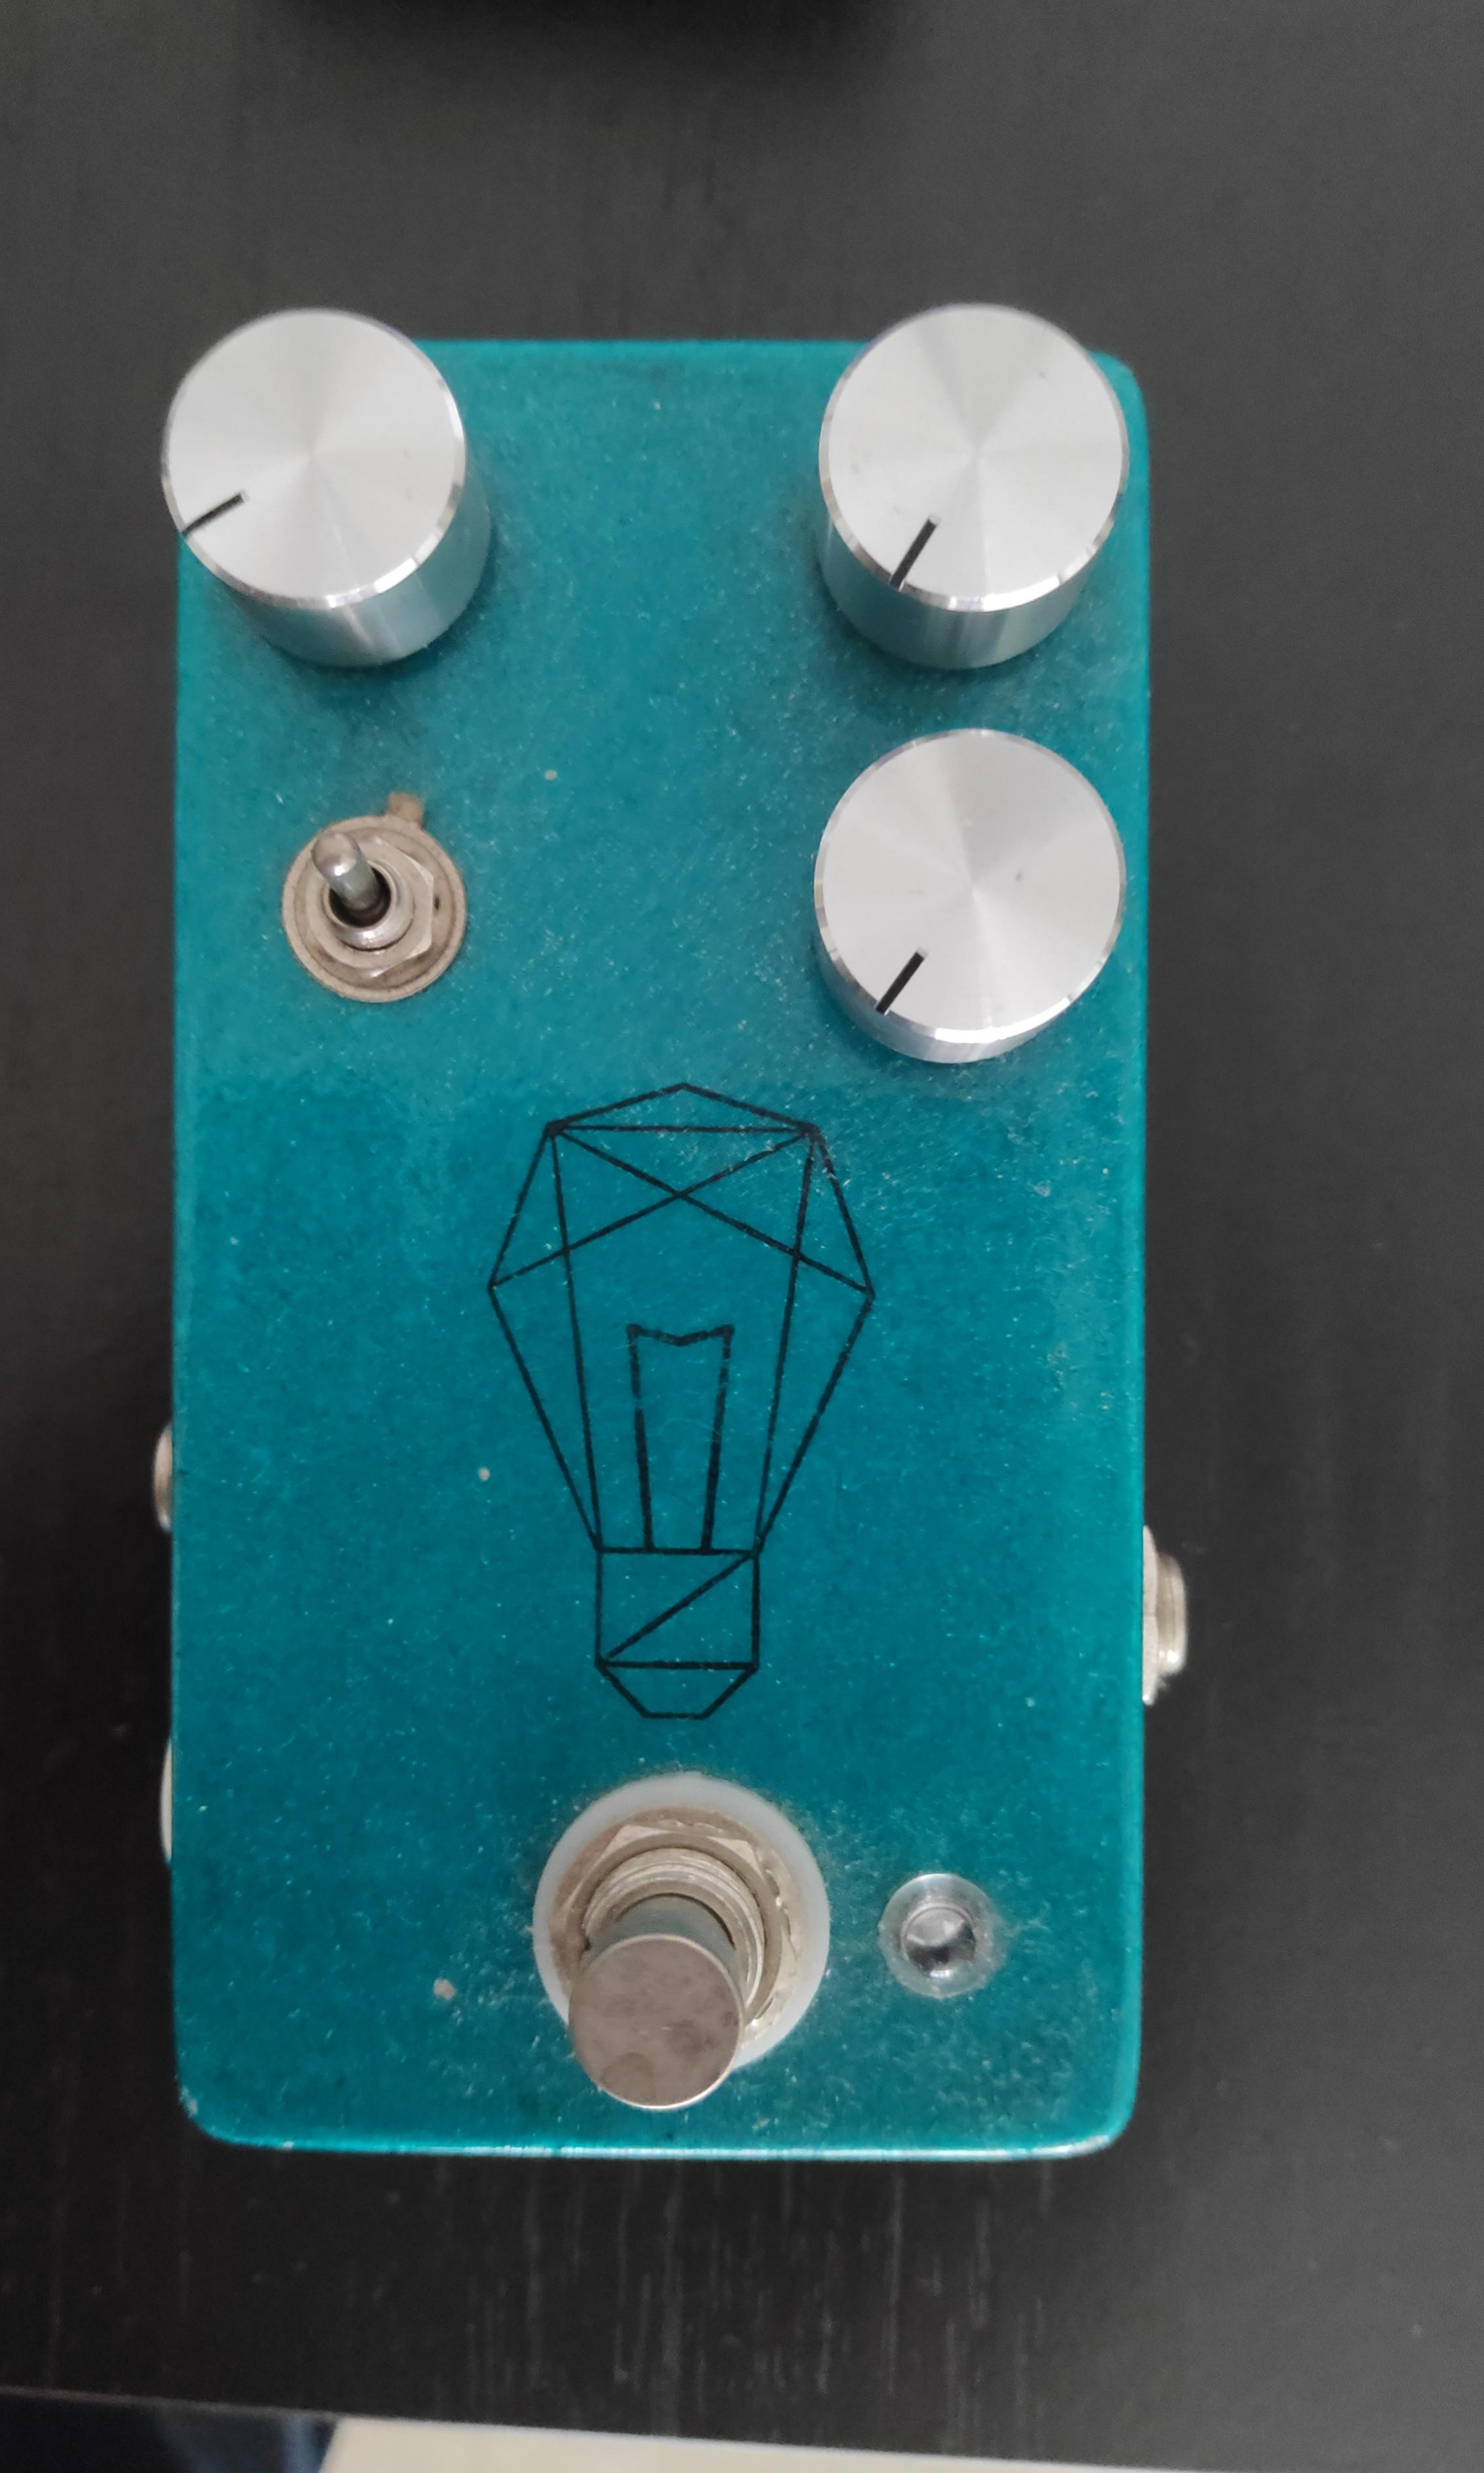 Pedalmonsters Bright Lights overdrive national day sale!